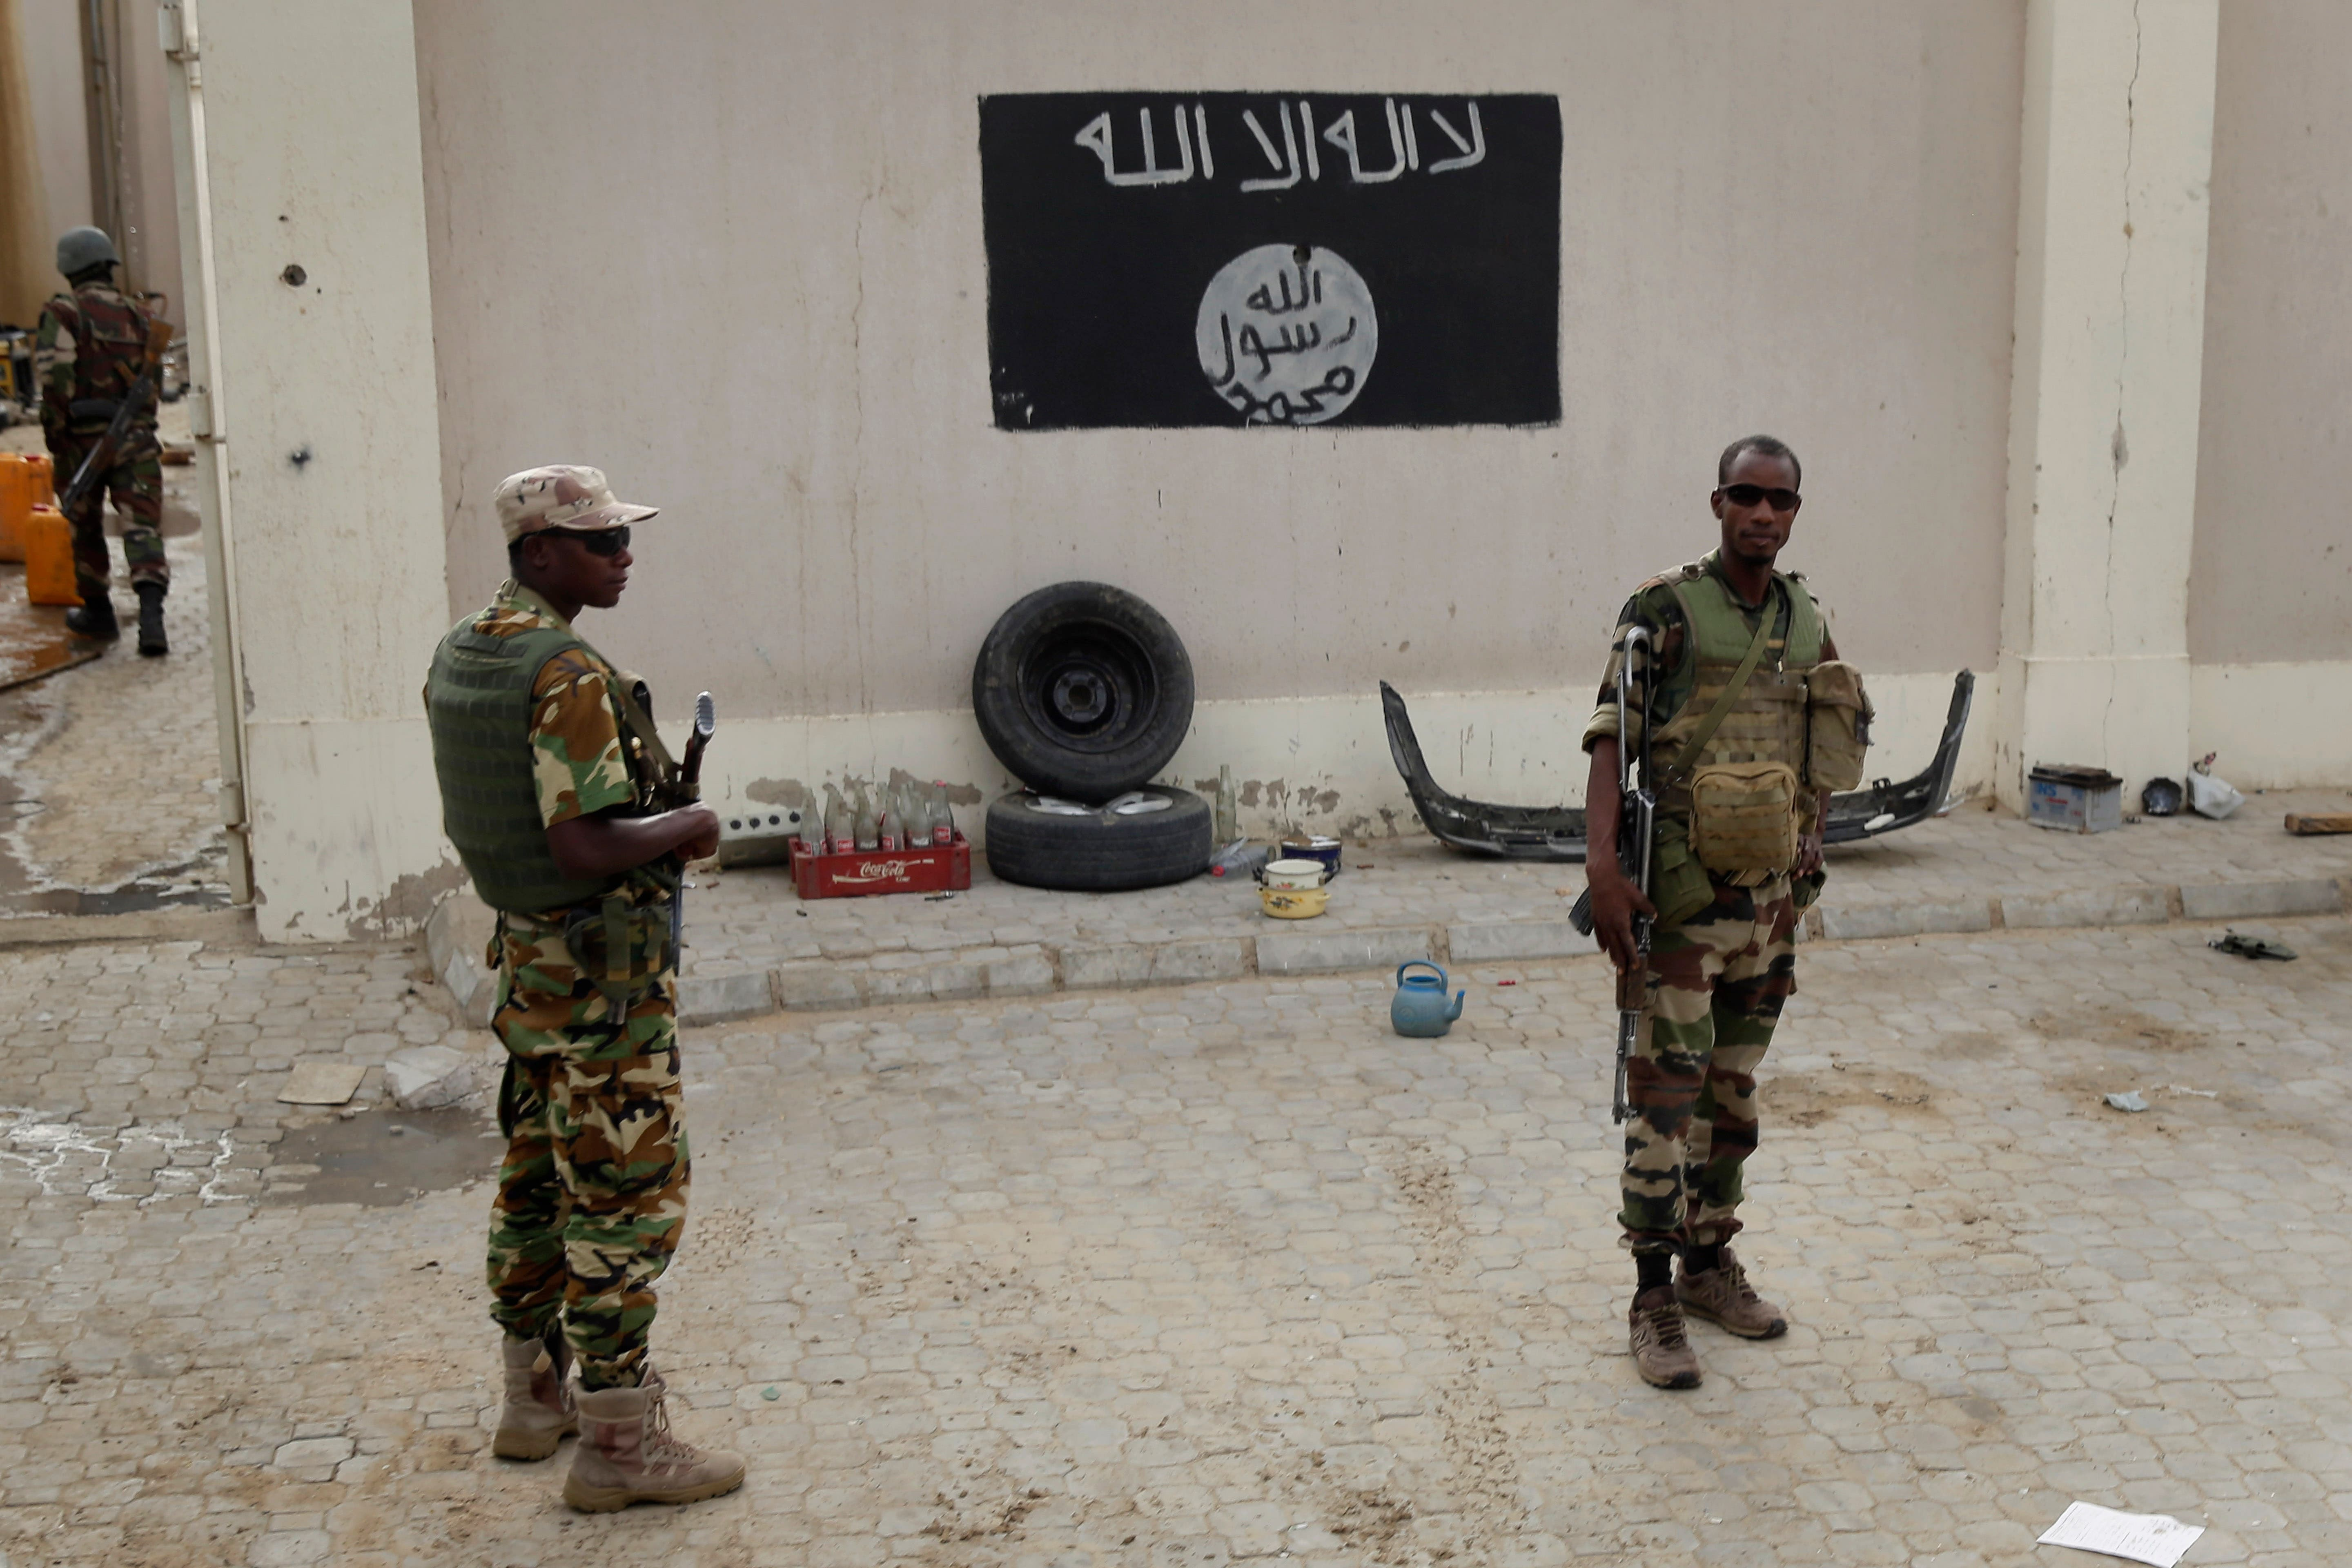 Chadian soldiers stand at a checkpoint in front of a Boko Haram flag the Nigerian city of Damasak, Nigeria, Wednesday March 18, 2015. Damasak was flushed of Boko Haram militants last week, and is now controlled by a joint Chadian and Nigerien force. (AP)